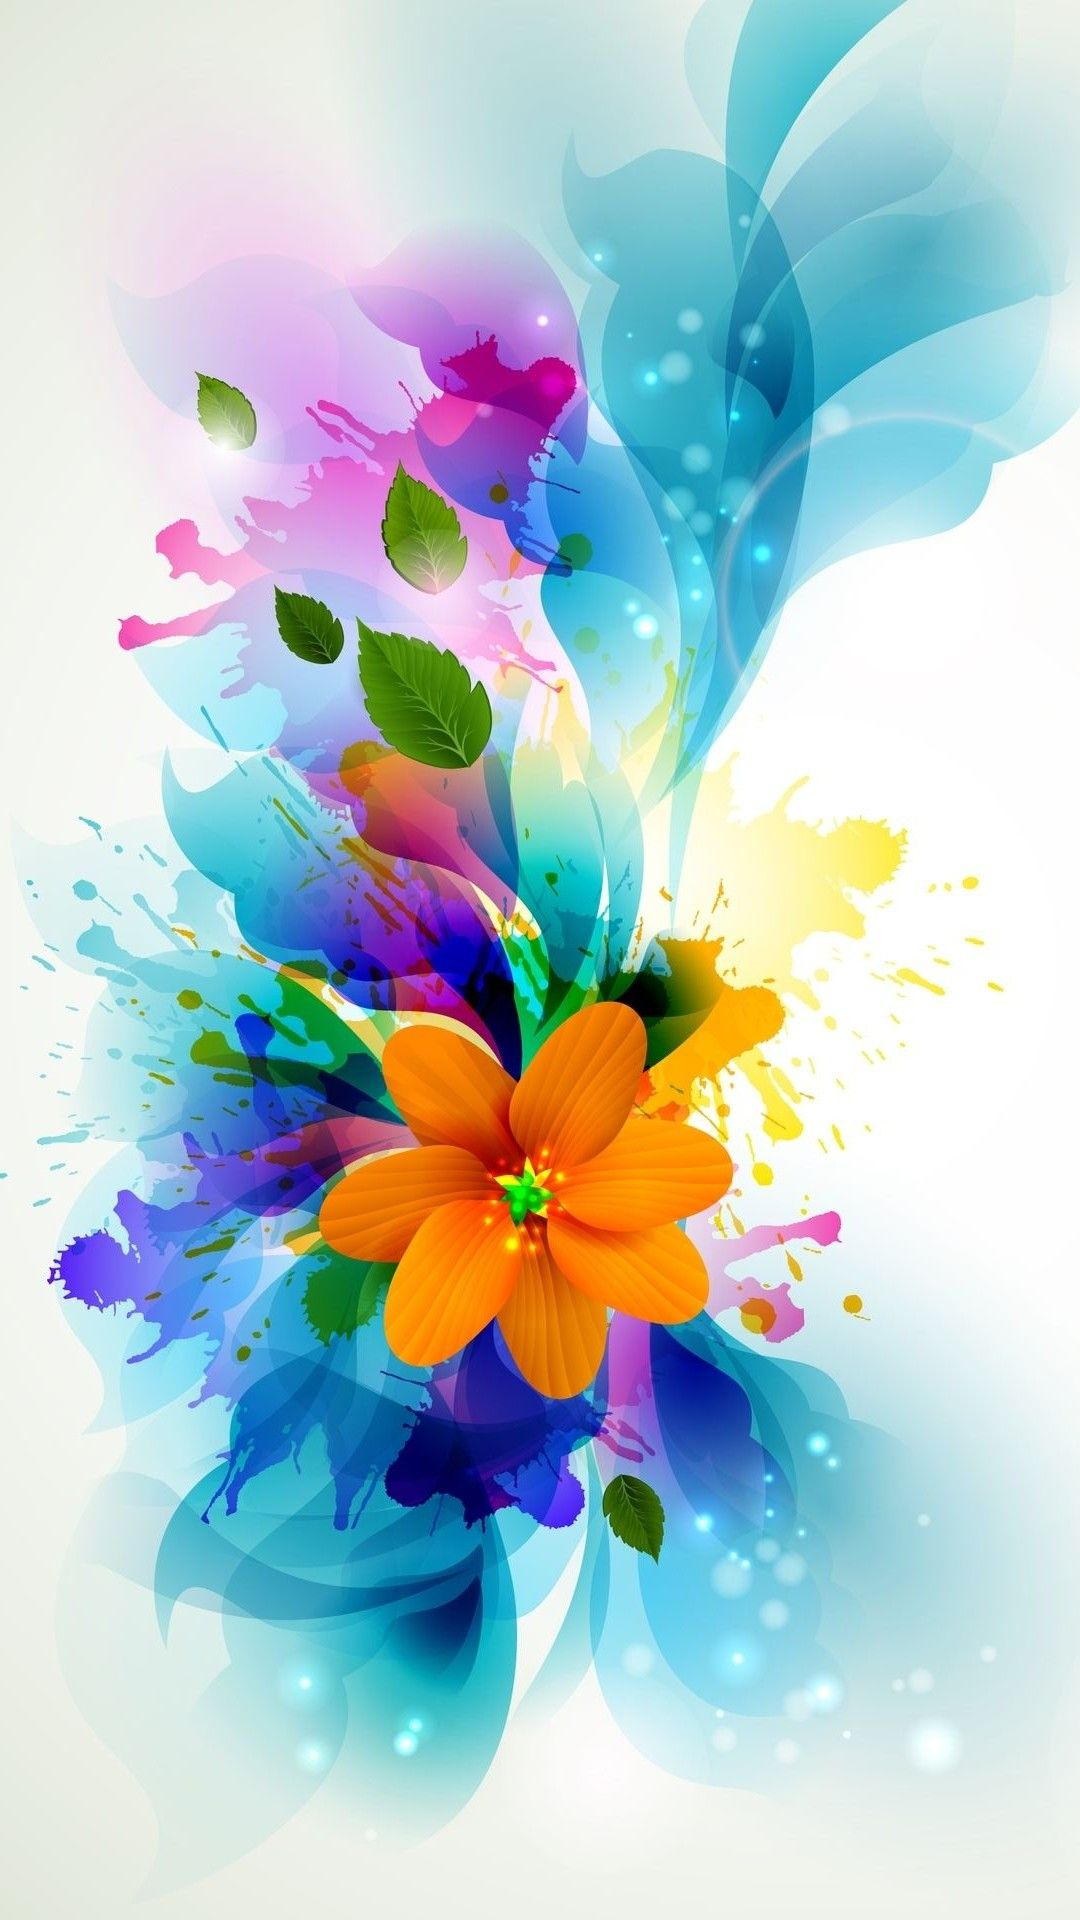 Wallpaper Flower Mobile Wallpaper Nature Flowers Ombre